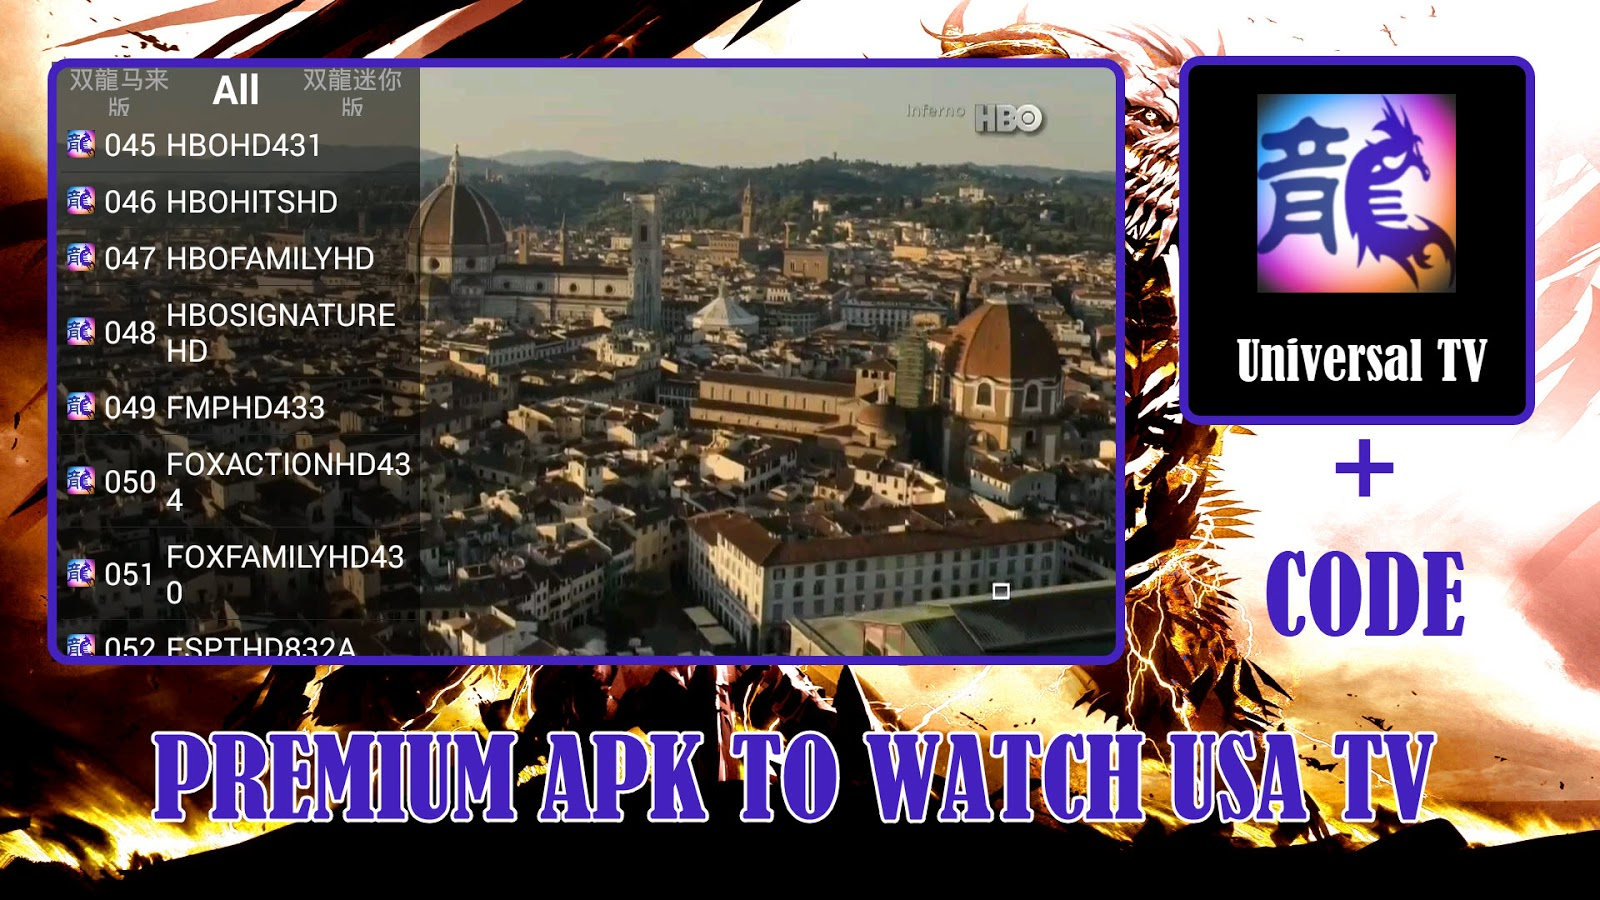 UNIVERSAL IPTV : NEW CHINA APK TO WATCH USA CHANNELS +